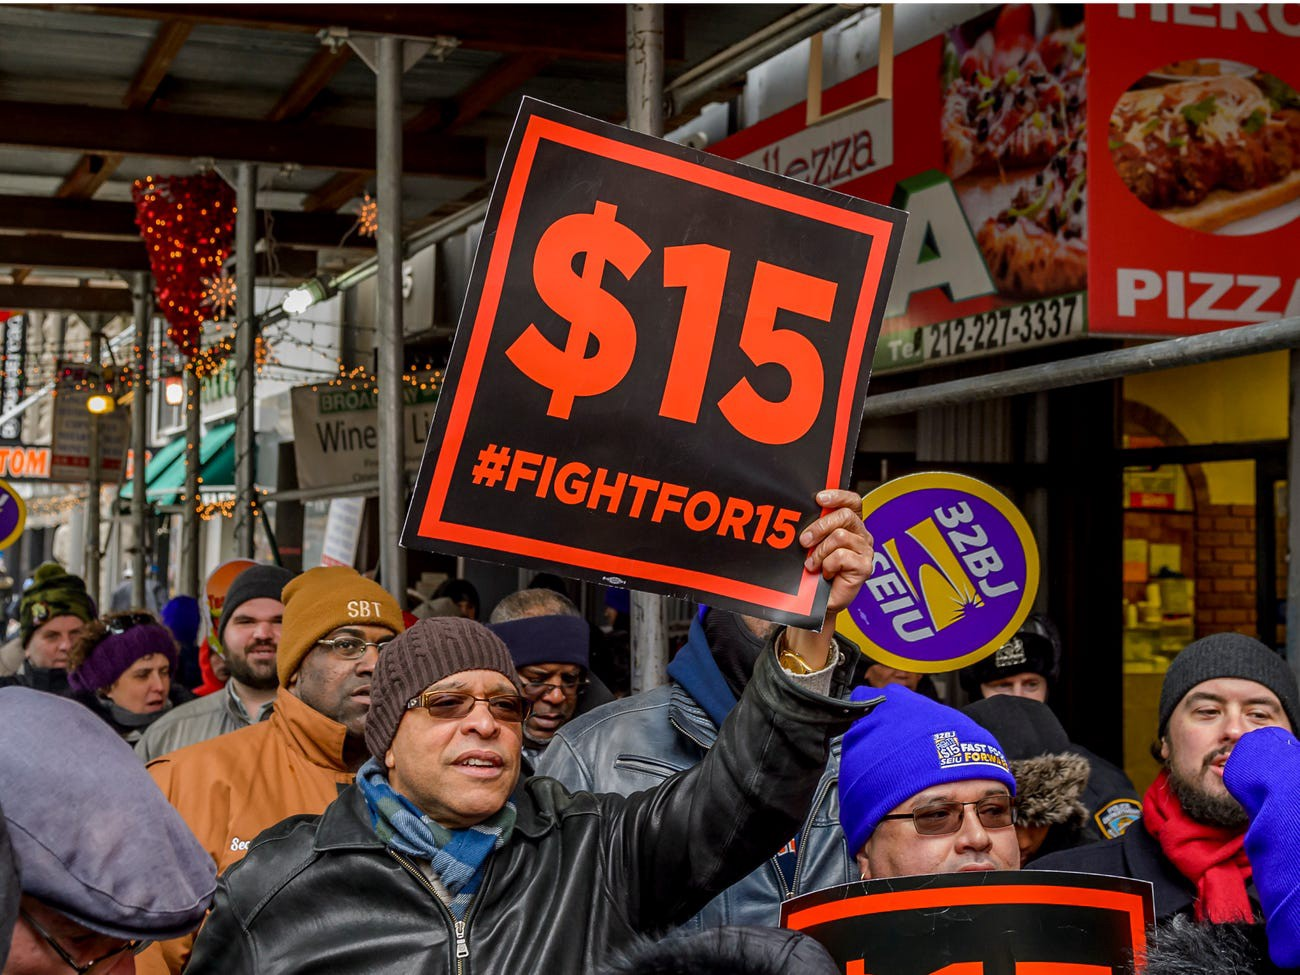 Protesters in the streets of New York in 2017 for the Fight for $15 campaign for a higher hourly wage.